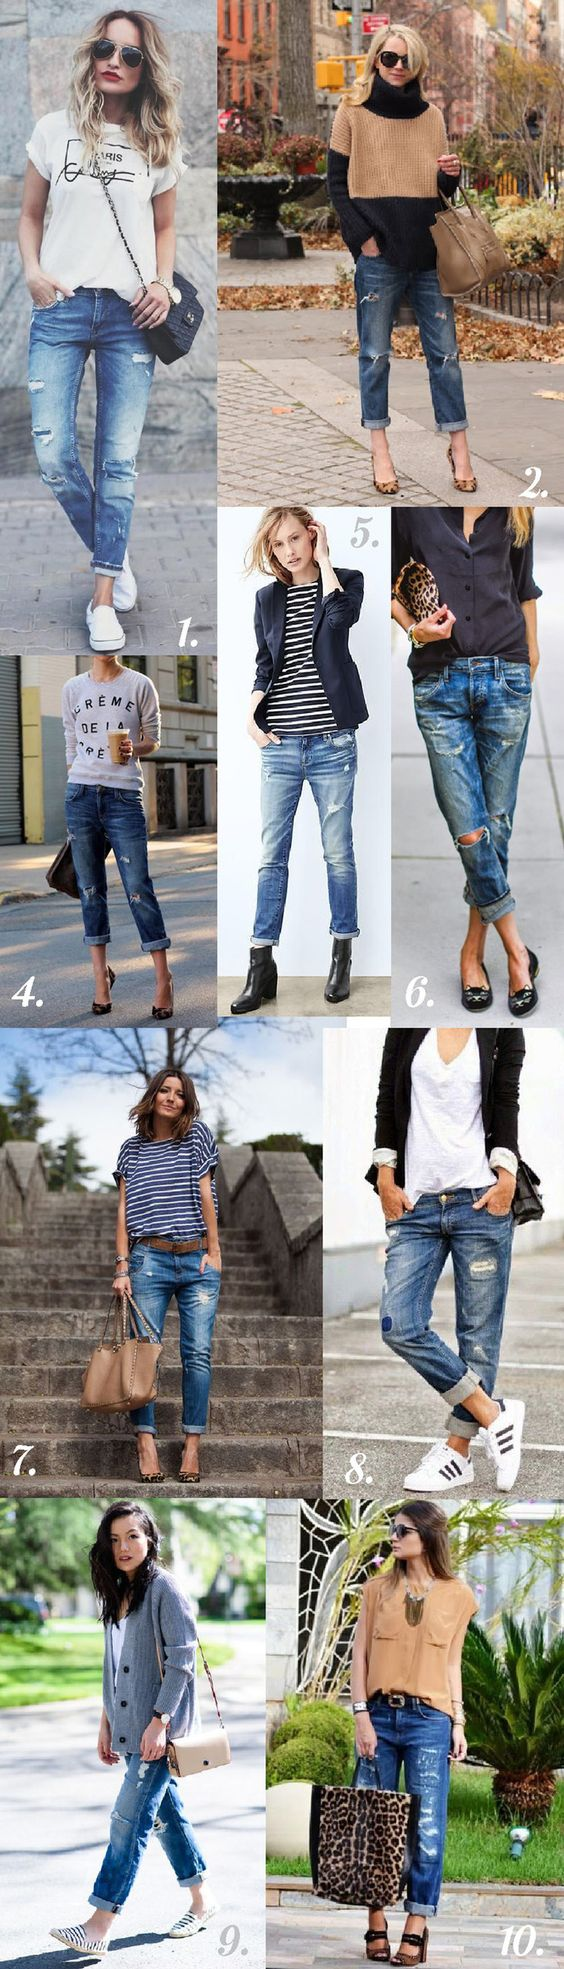 Distressed boyfriend jeans • Closet Case Files http://closetcasefiles.com/morgan-boyfriend-jeans-stlying-inspiration/: